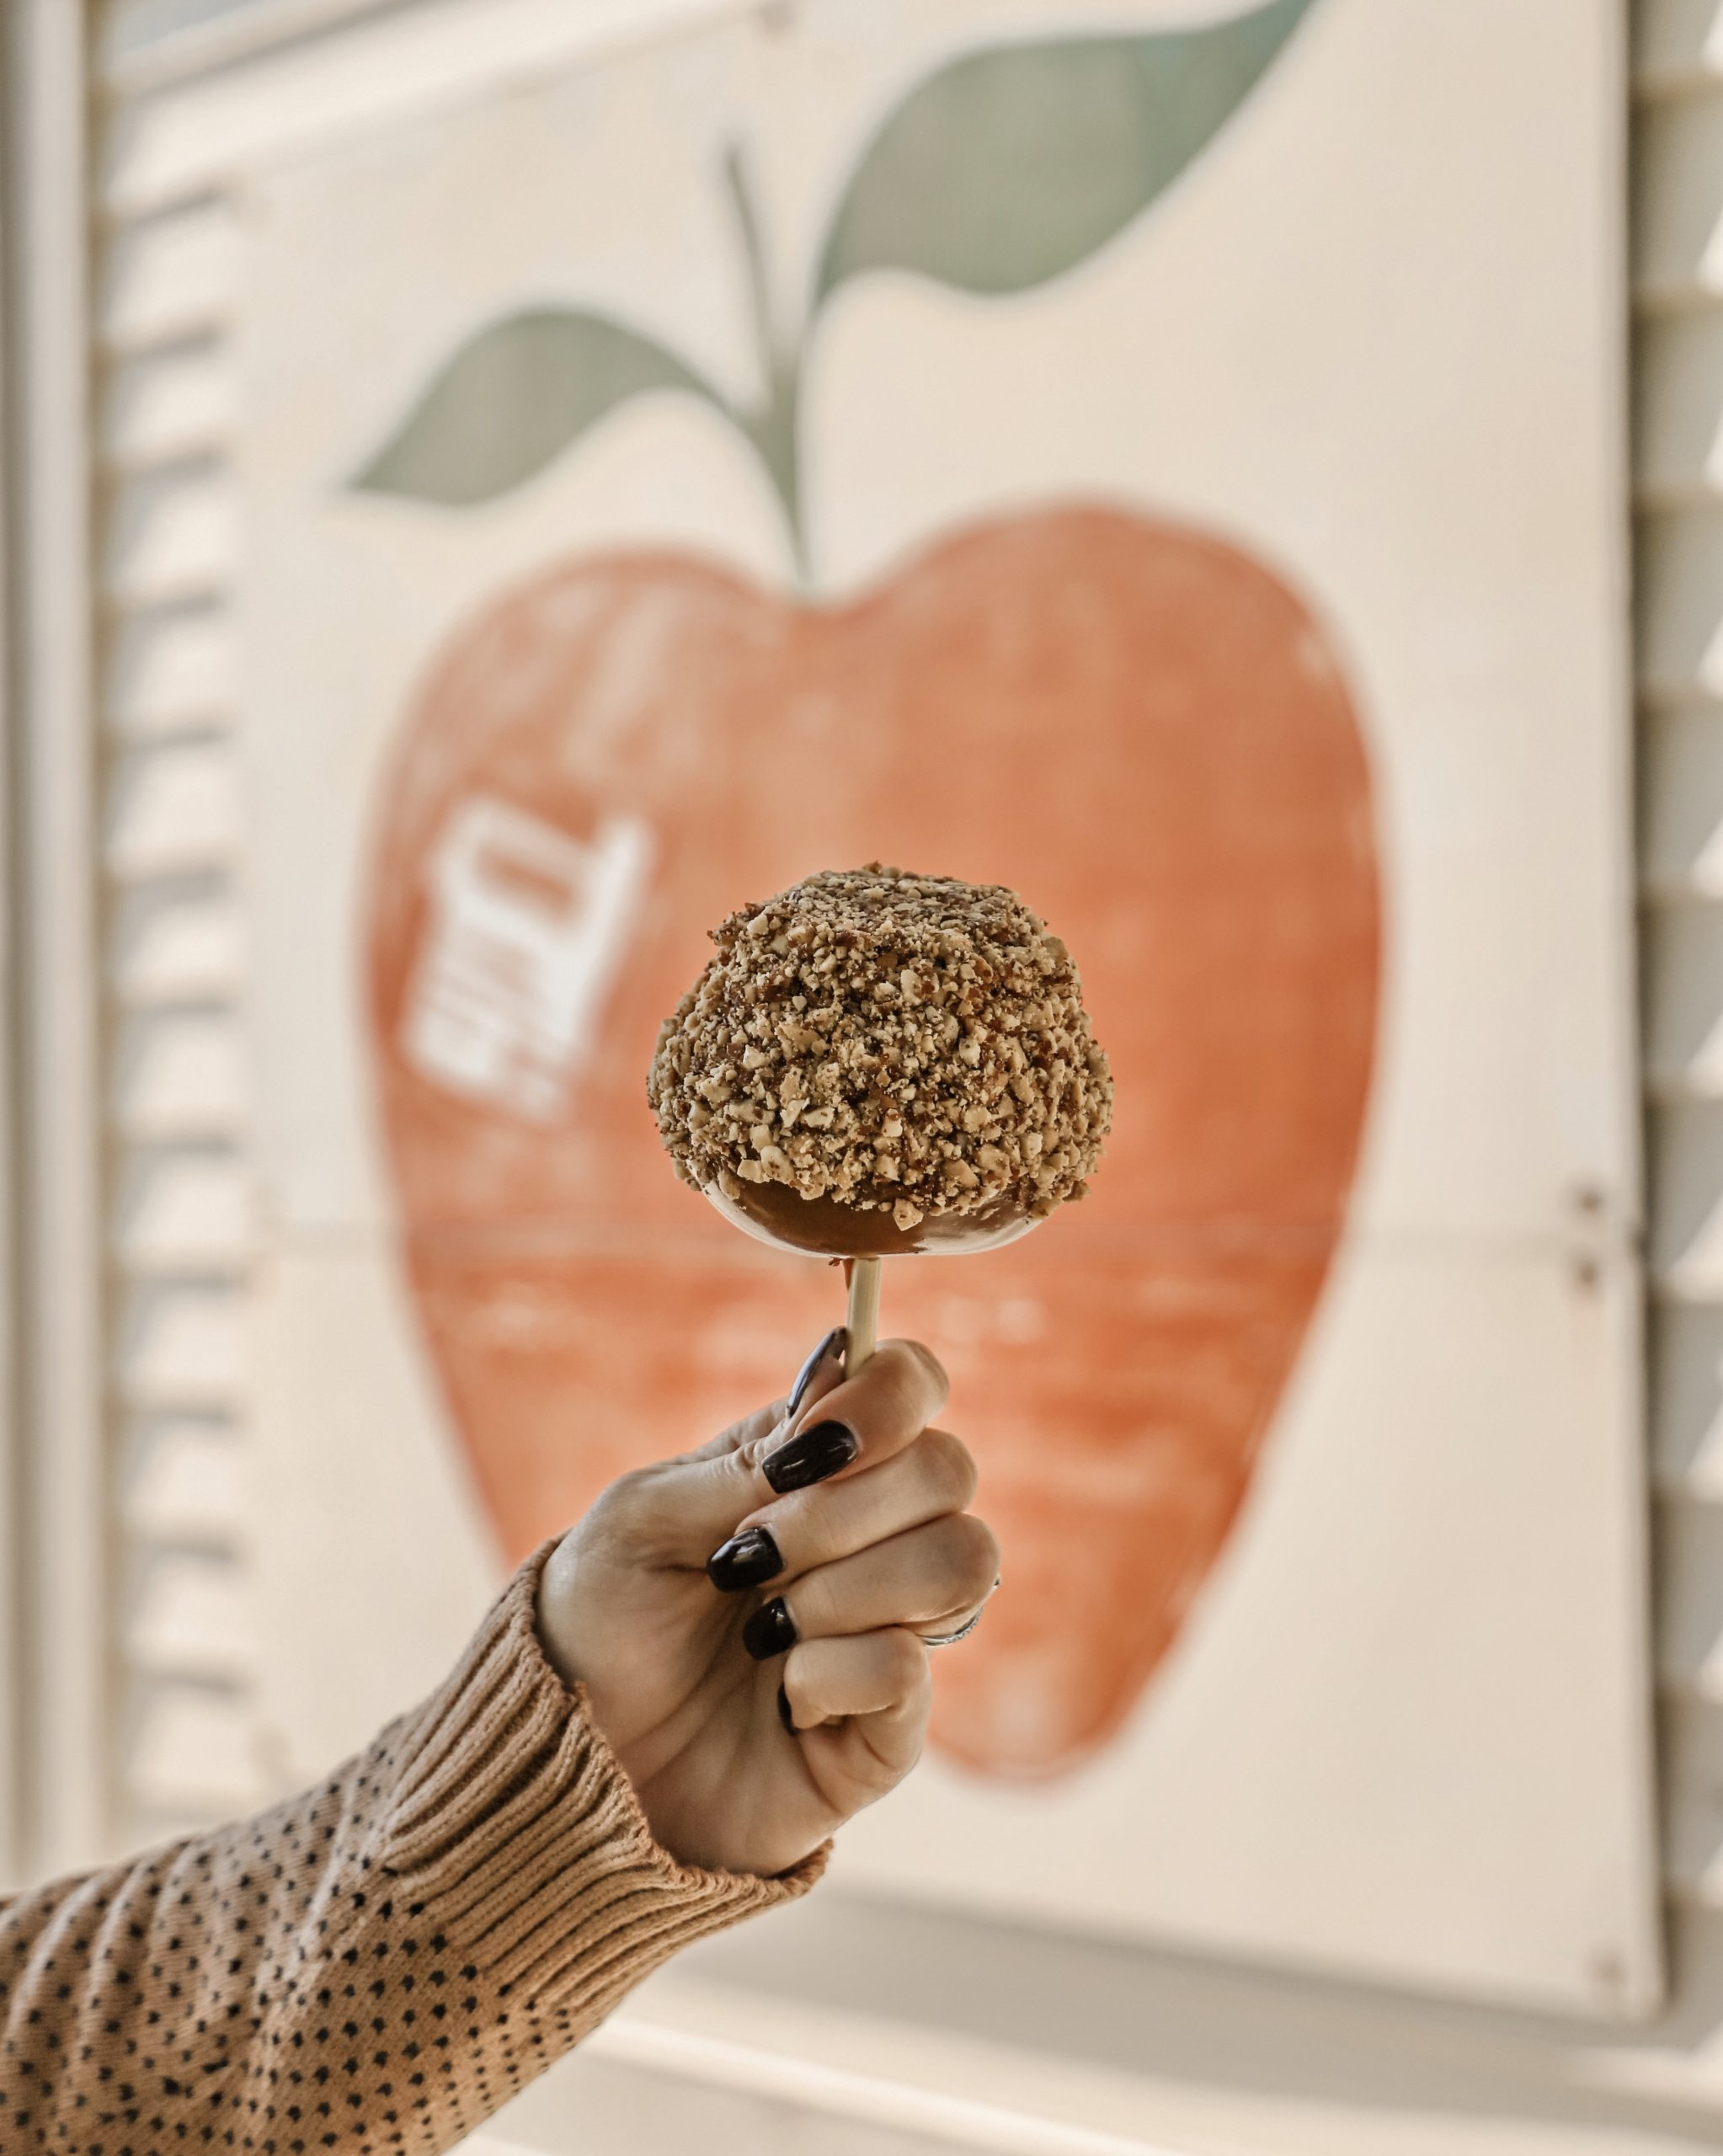 a hand holding a caramel apple with nuts